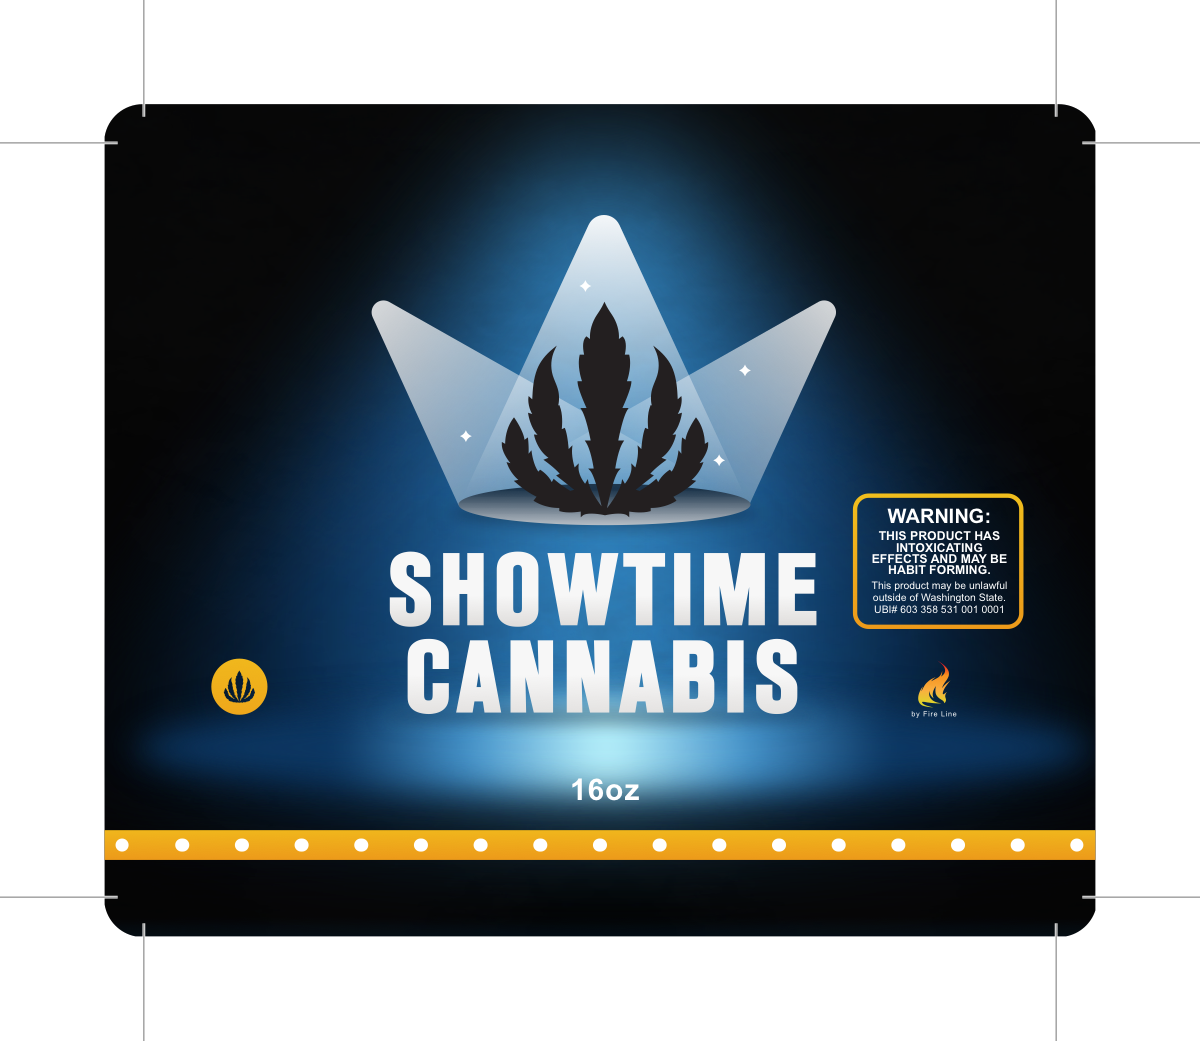 packaging for Showtime Cannabis